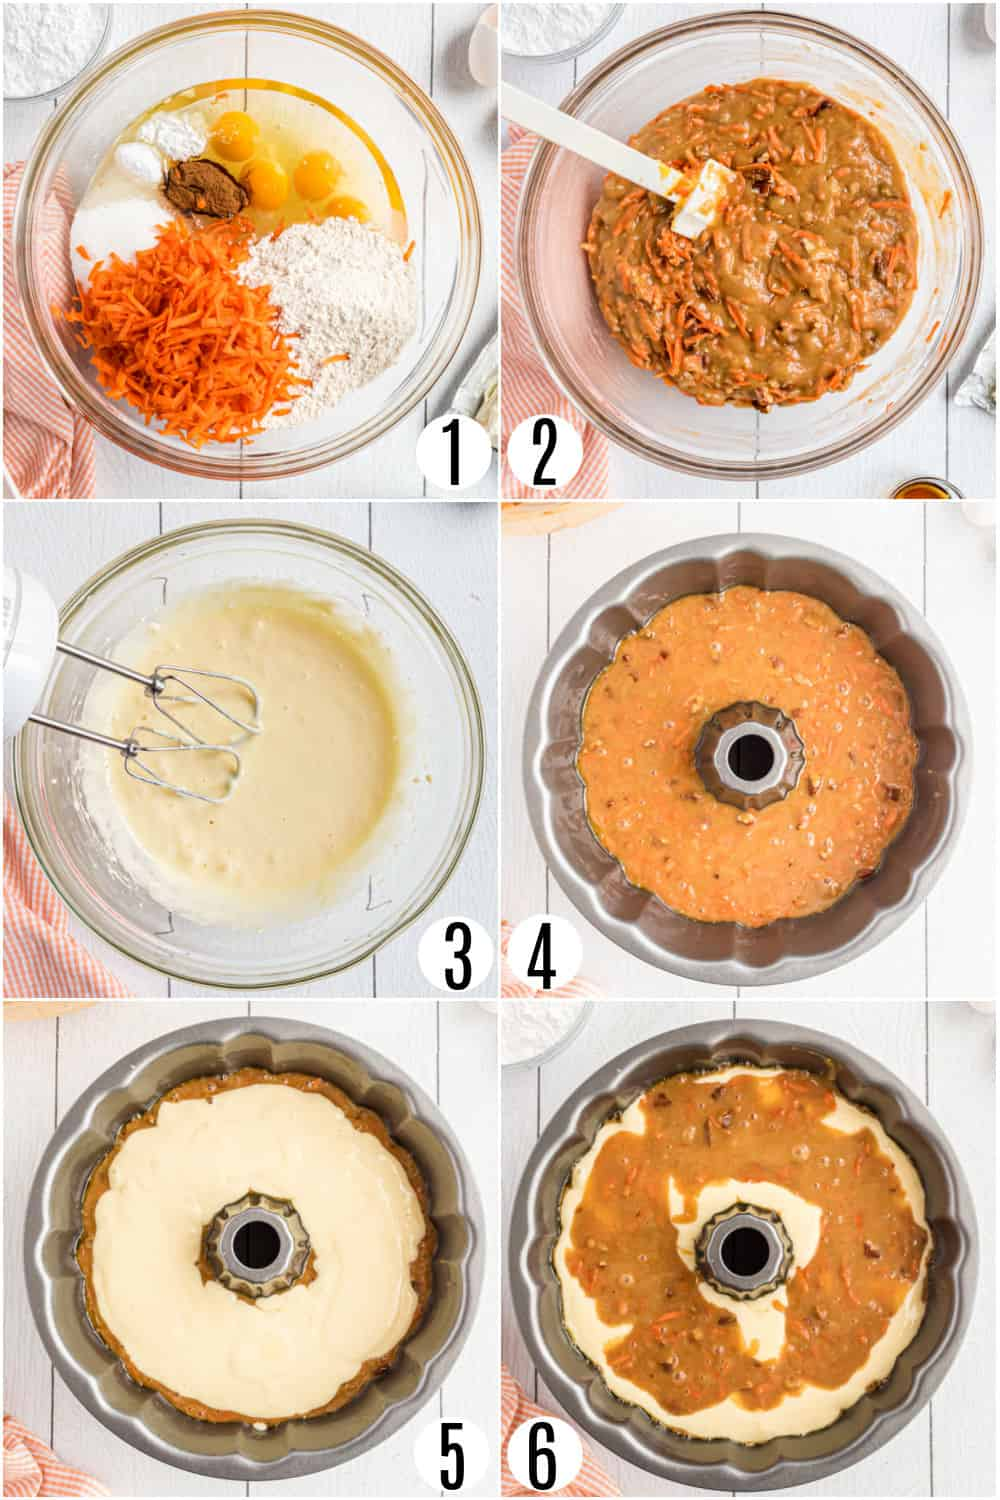 Step by step photos showing how to make carrot cake in a bundt pan.